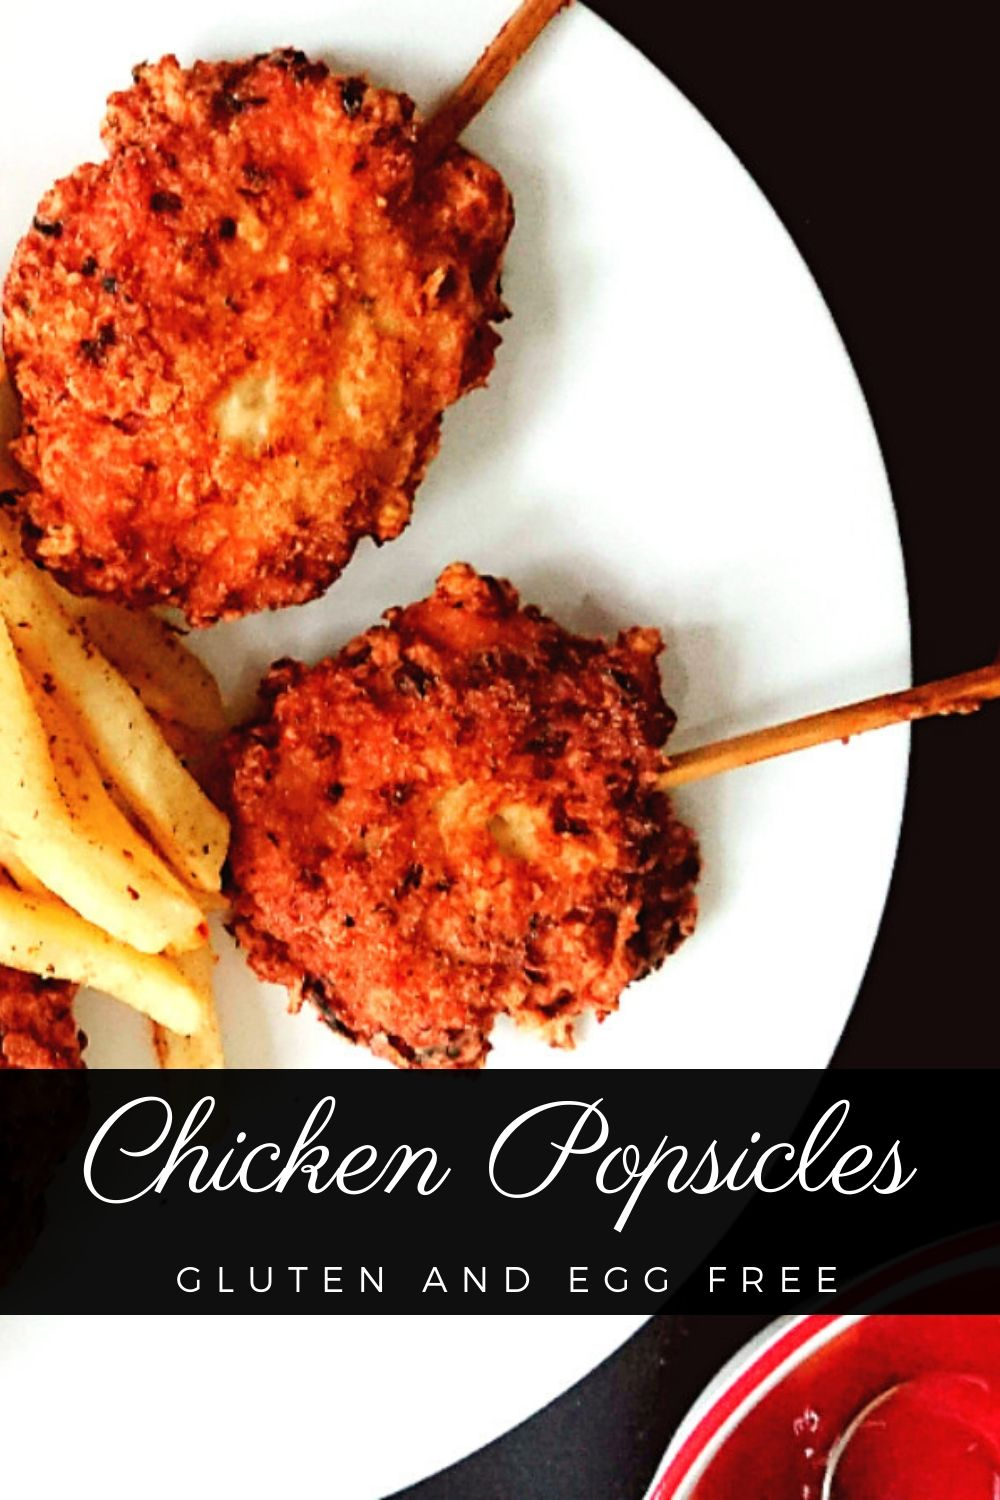 pinning image for the allergy friendly chicken popsicle recipe